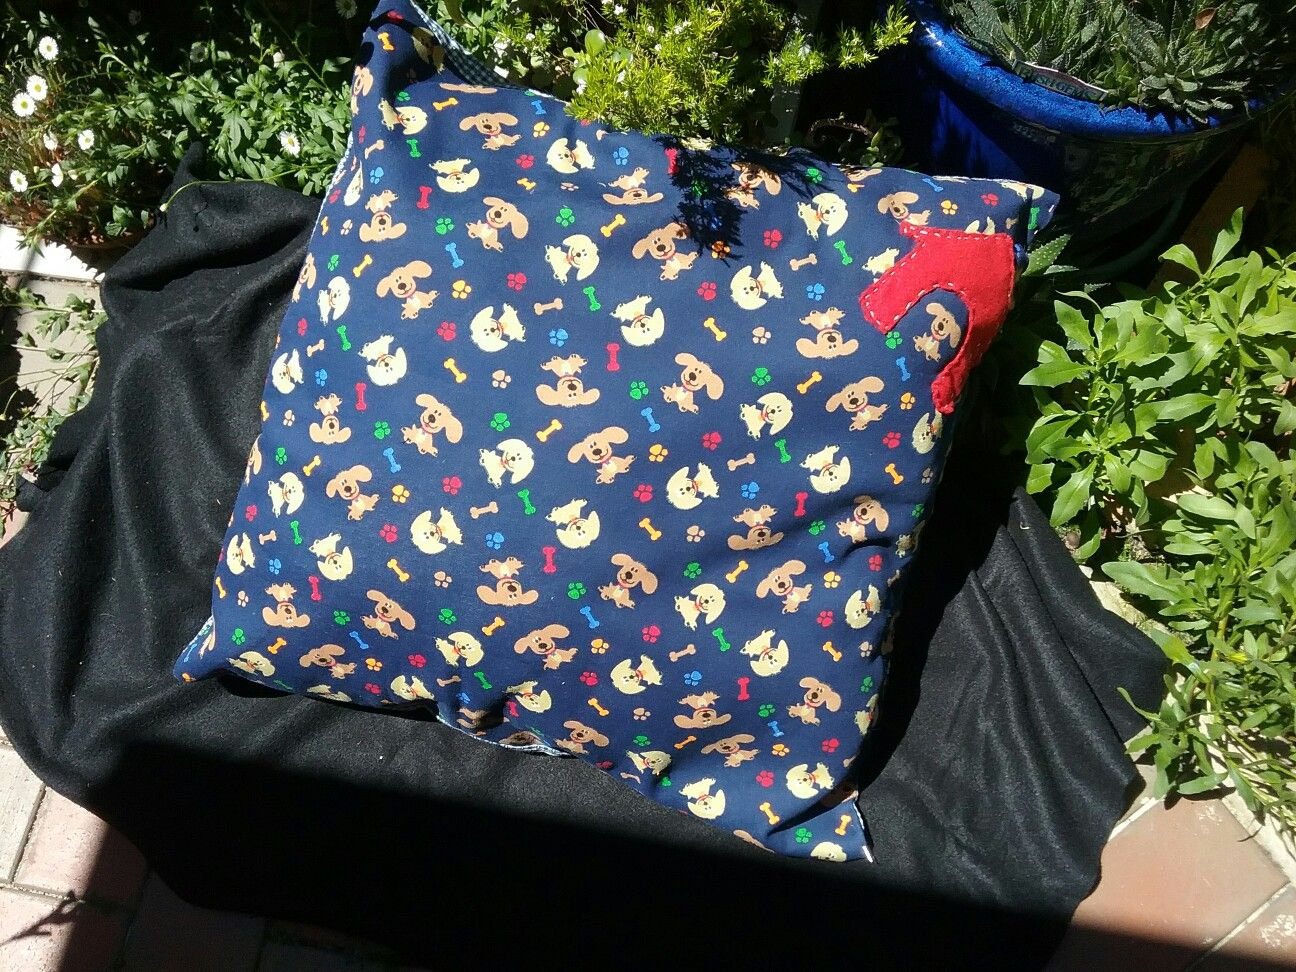 12++ Animal crossing body pillow images